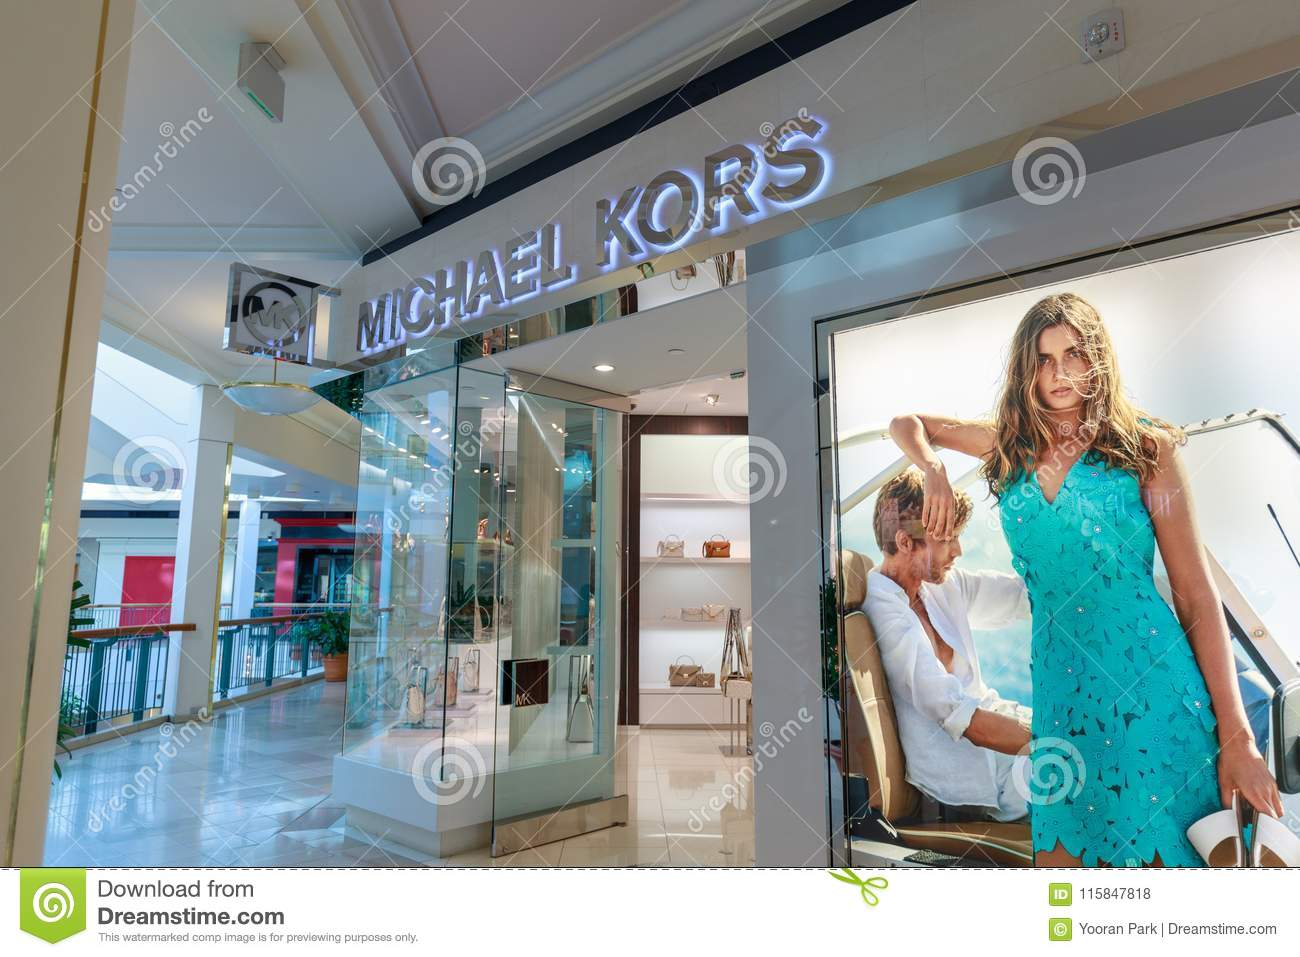 Michaels Kors Shop At Pioneer Place Shopping Mall In Downtown Portland Editorial Stock Photo Image Of Shopping Items 115847818